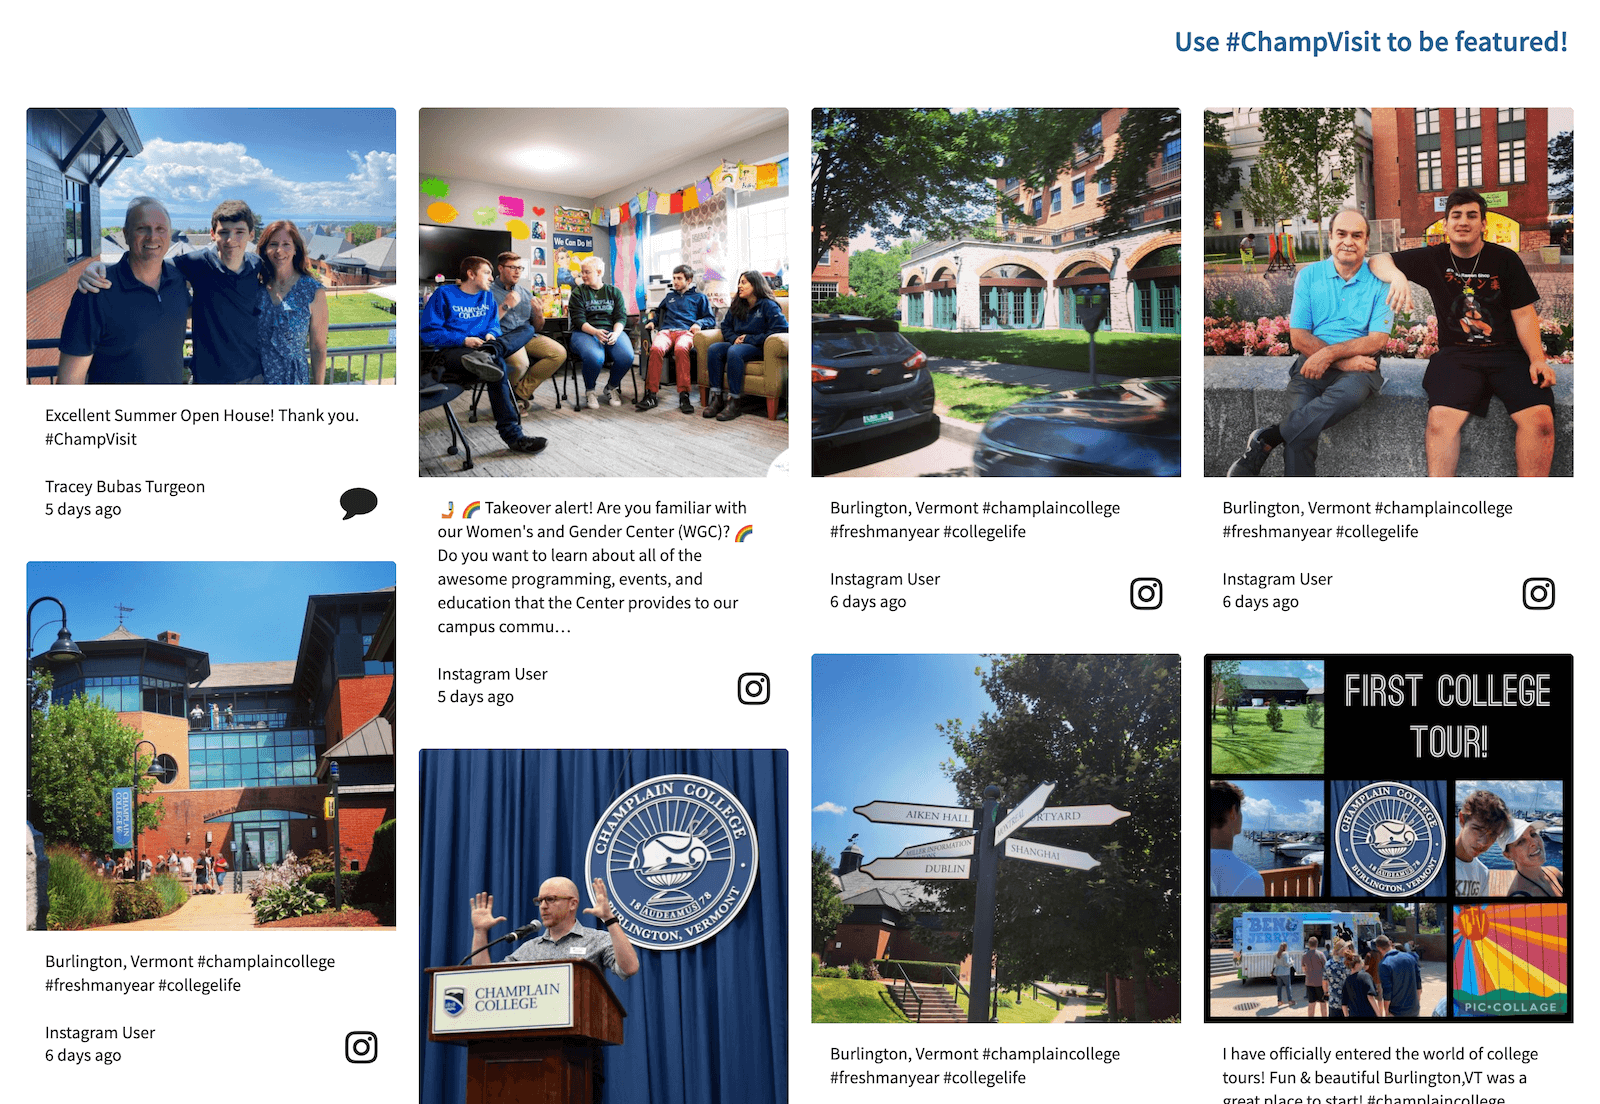 Screenshot of the #ChampVisit social wall. It shows pictures of people visiting Champlain College, the campus grounds, group meetings, college tours etc.